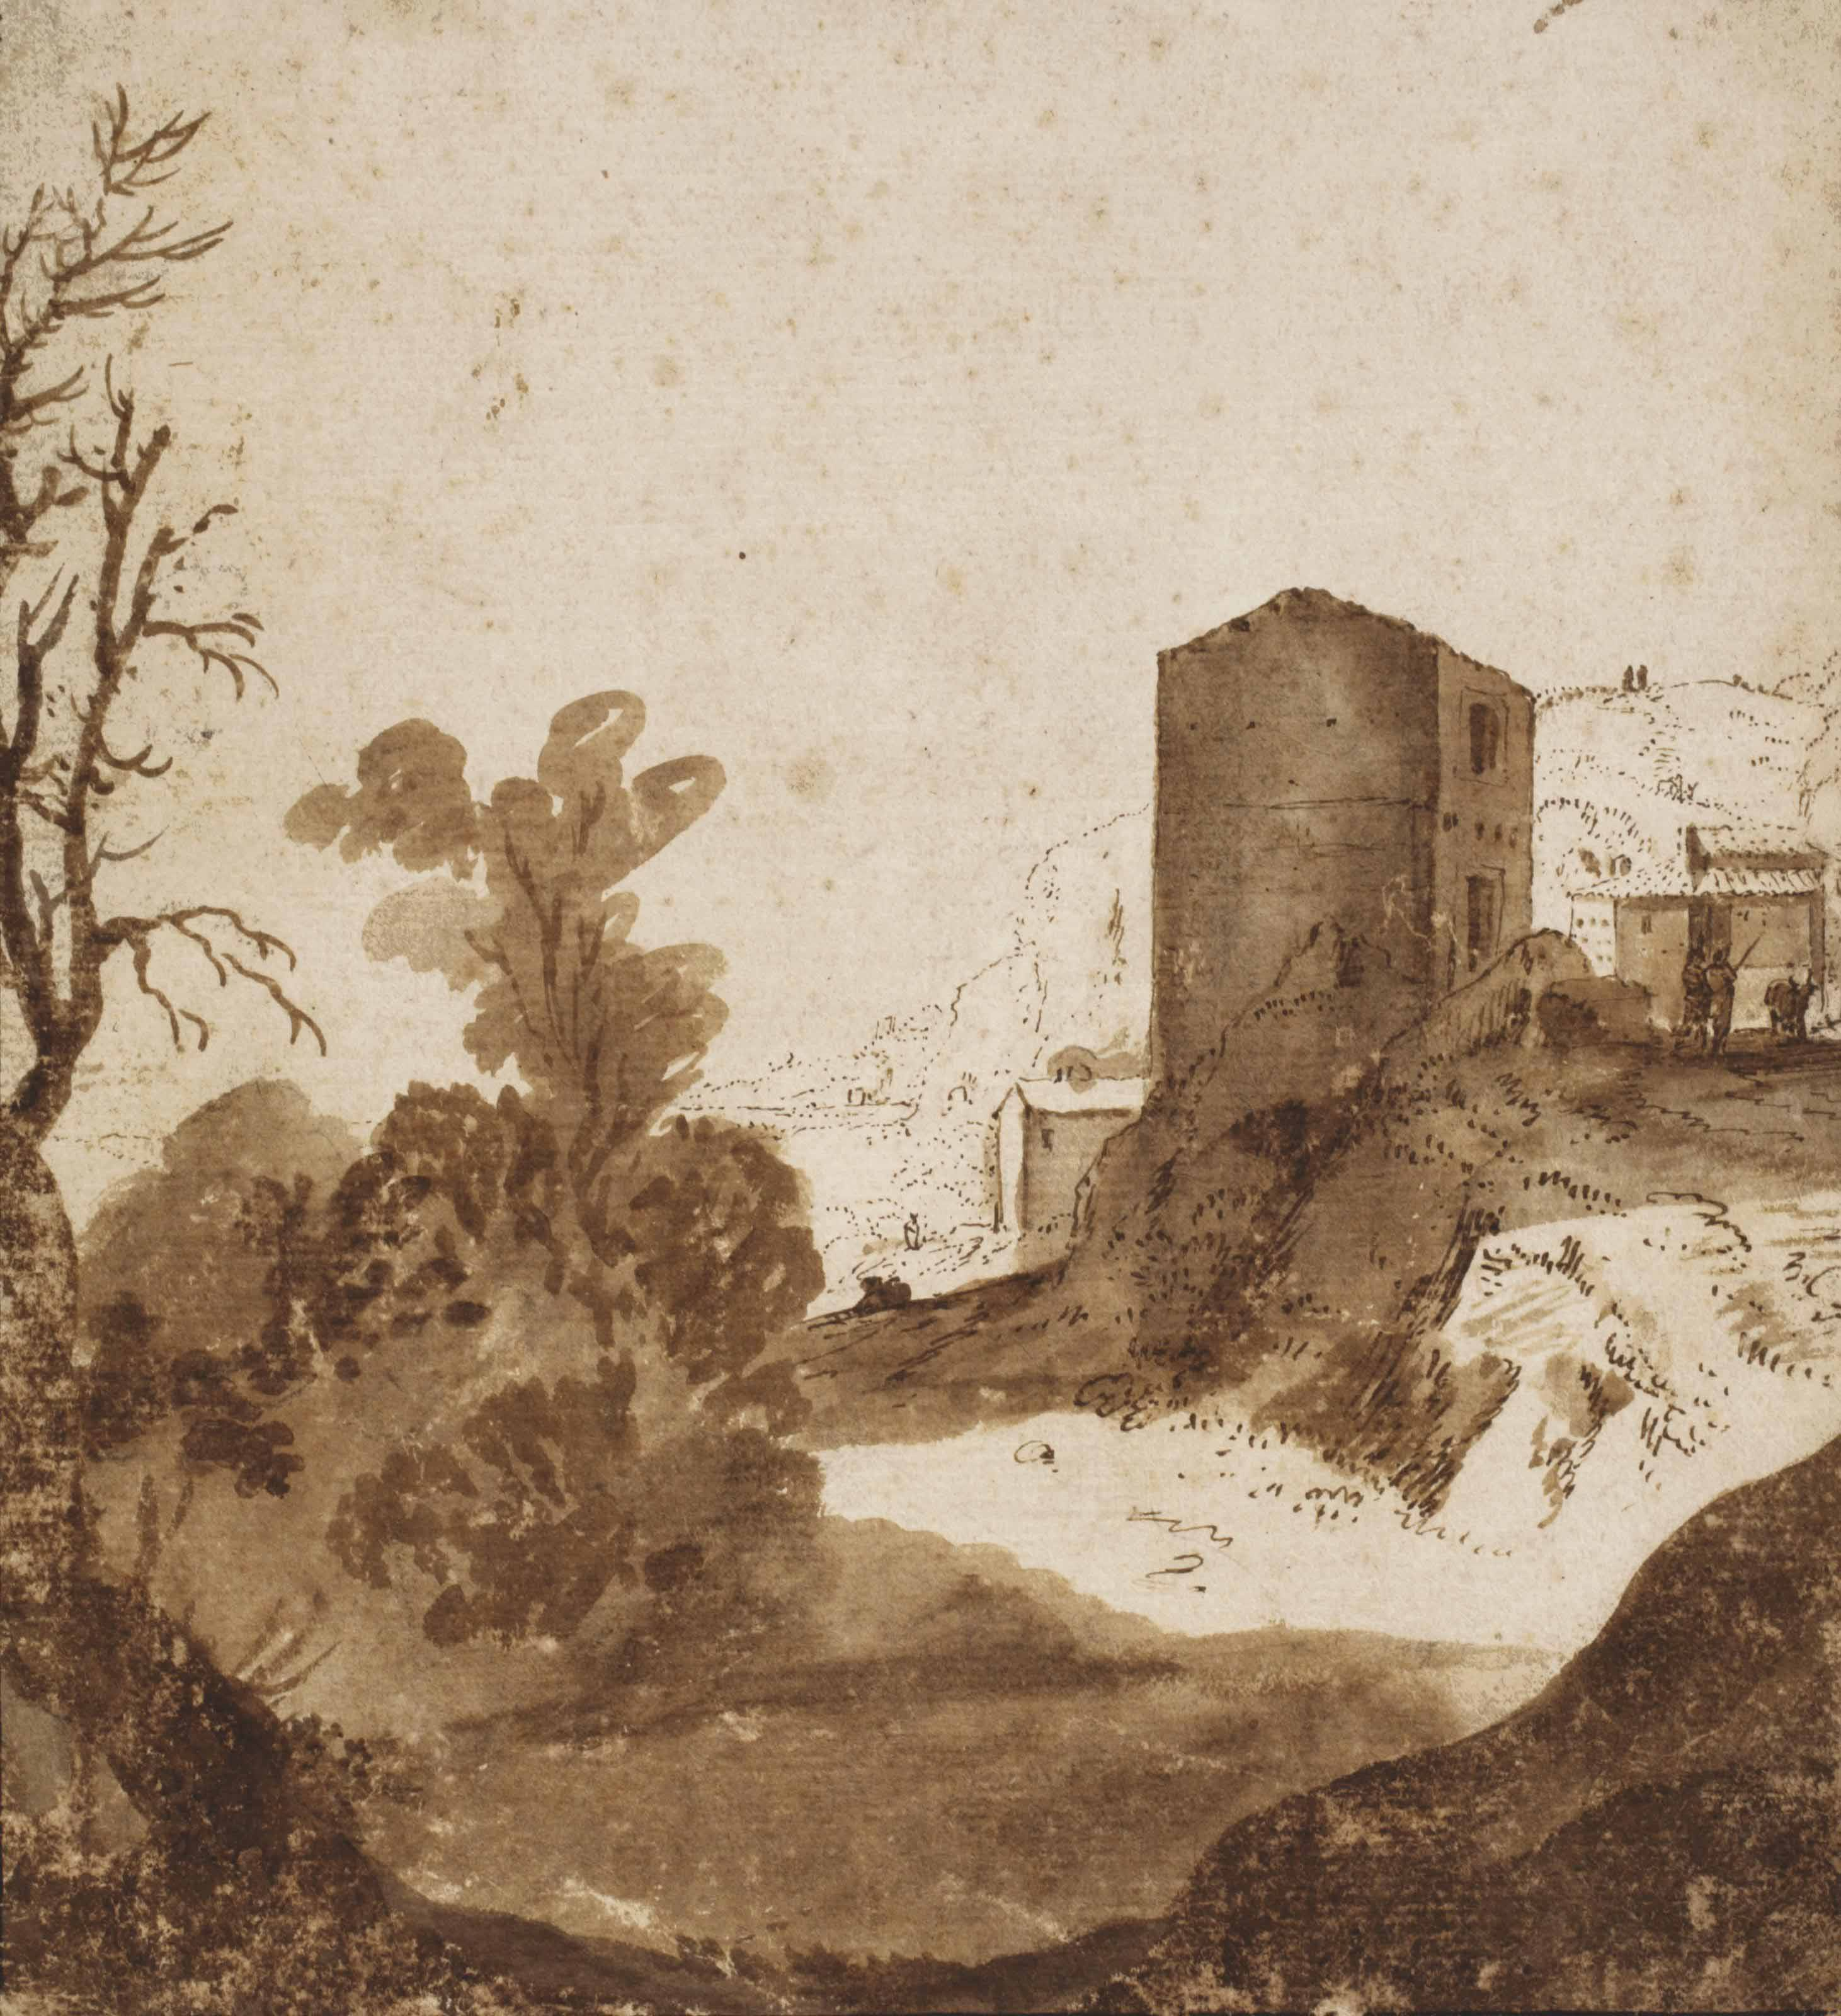 A tower in a hilly landscape near Rome